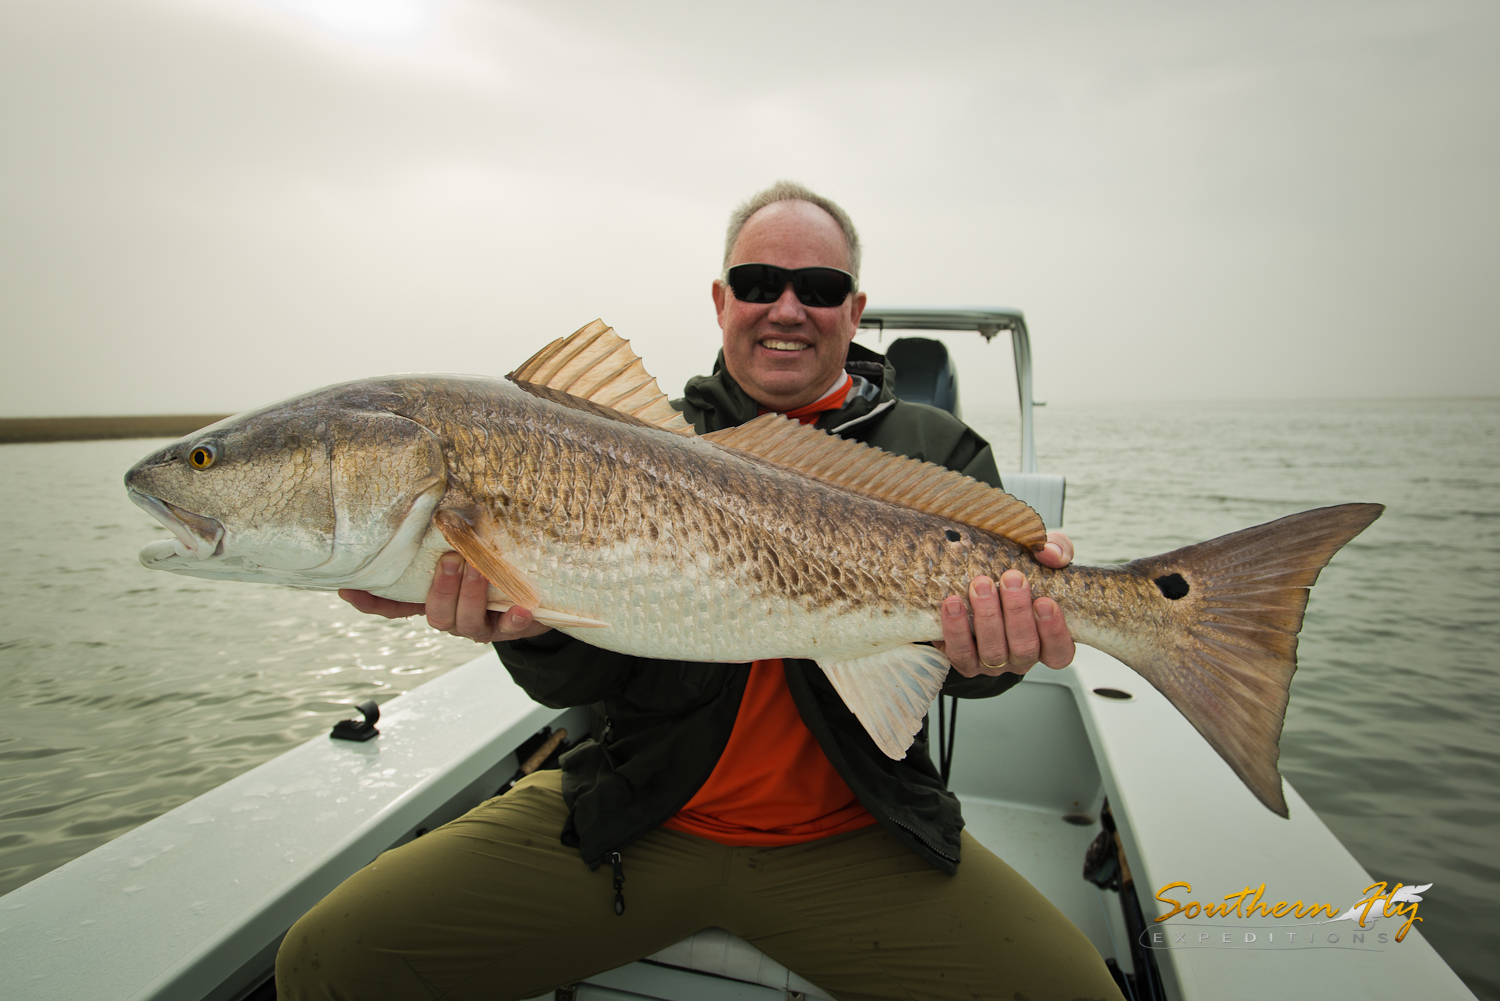 Fly Fishing New Orleans with Southern Fly Expeditions the Best Fly Fishing Guide in Louisiana